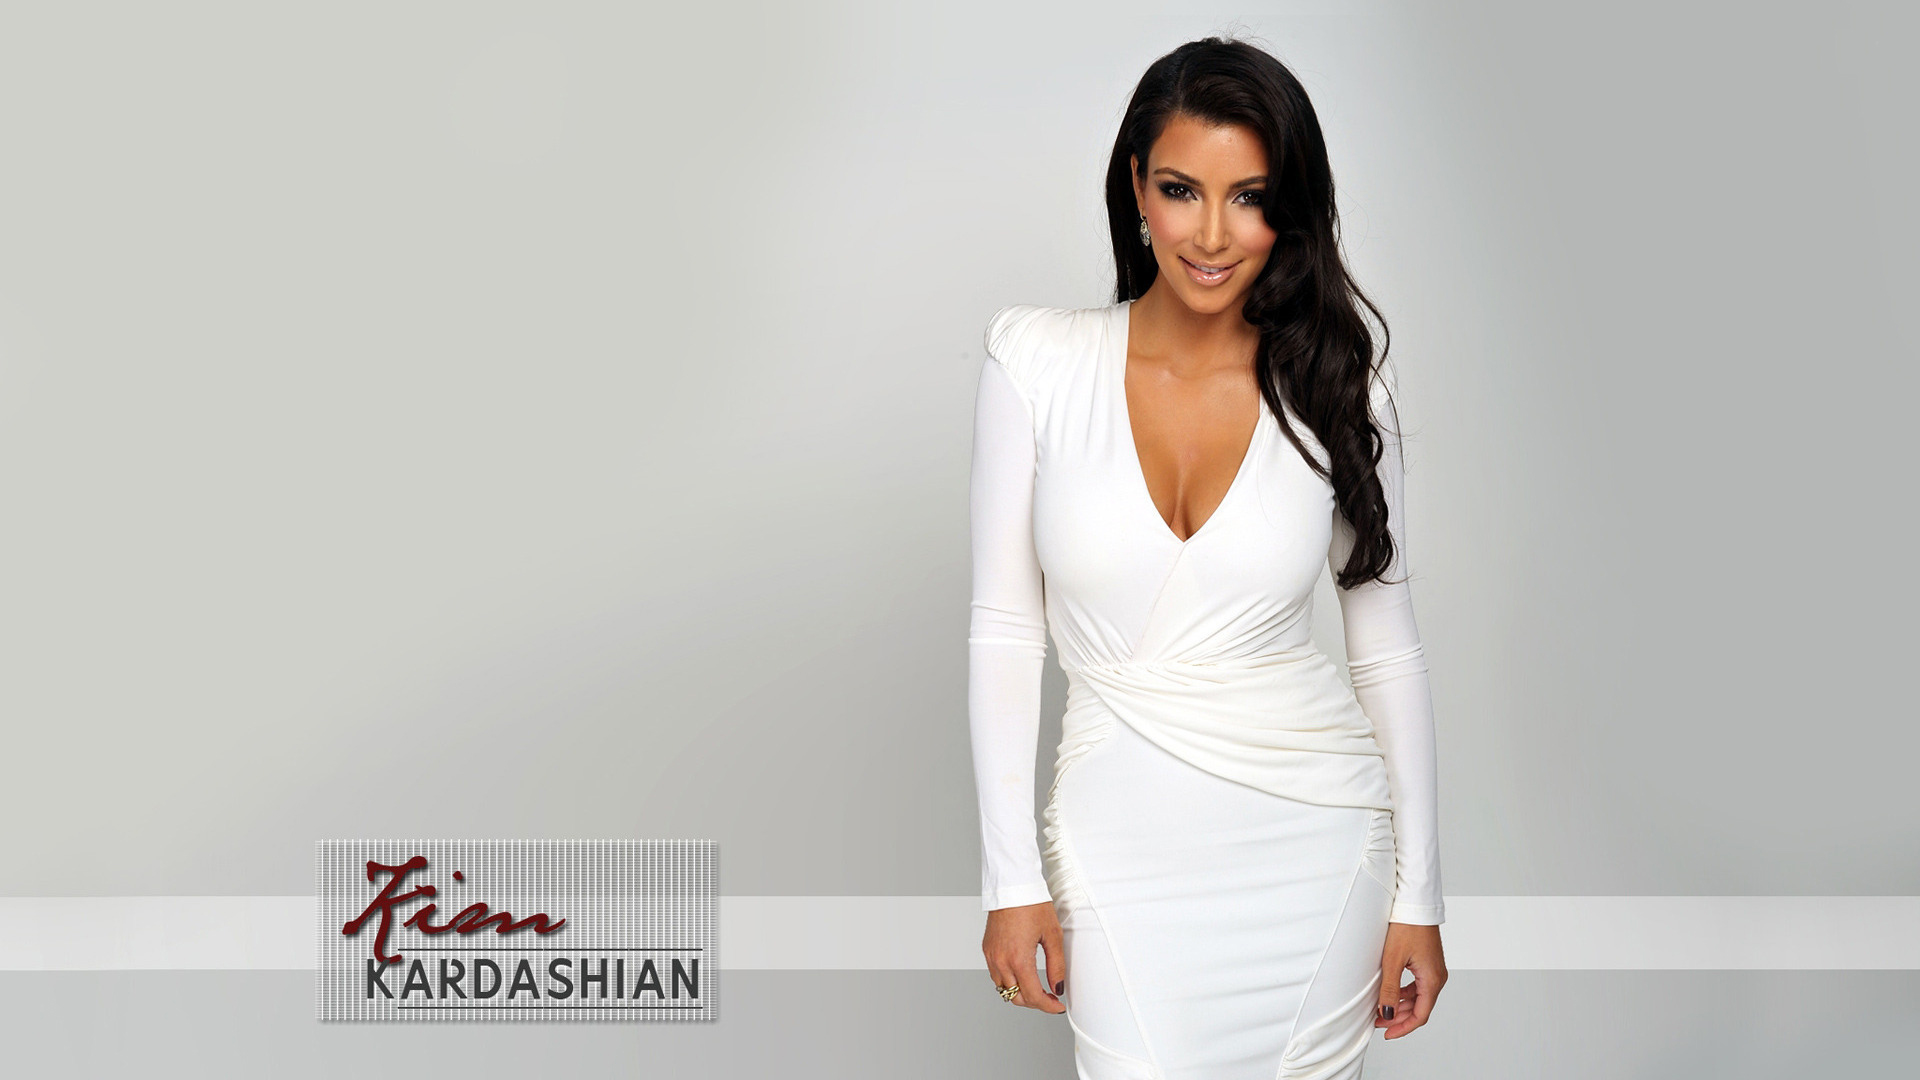 Kim Kardashian Desktop Background   Wallpaper High Definition High 1920x1080